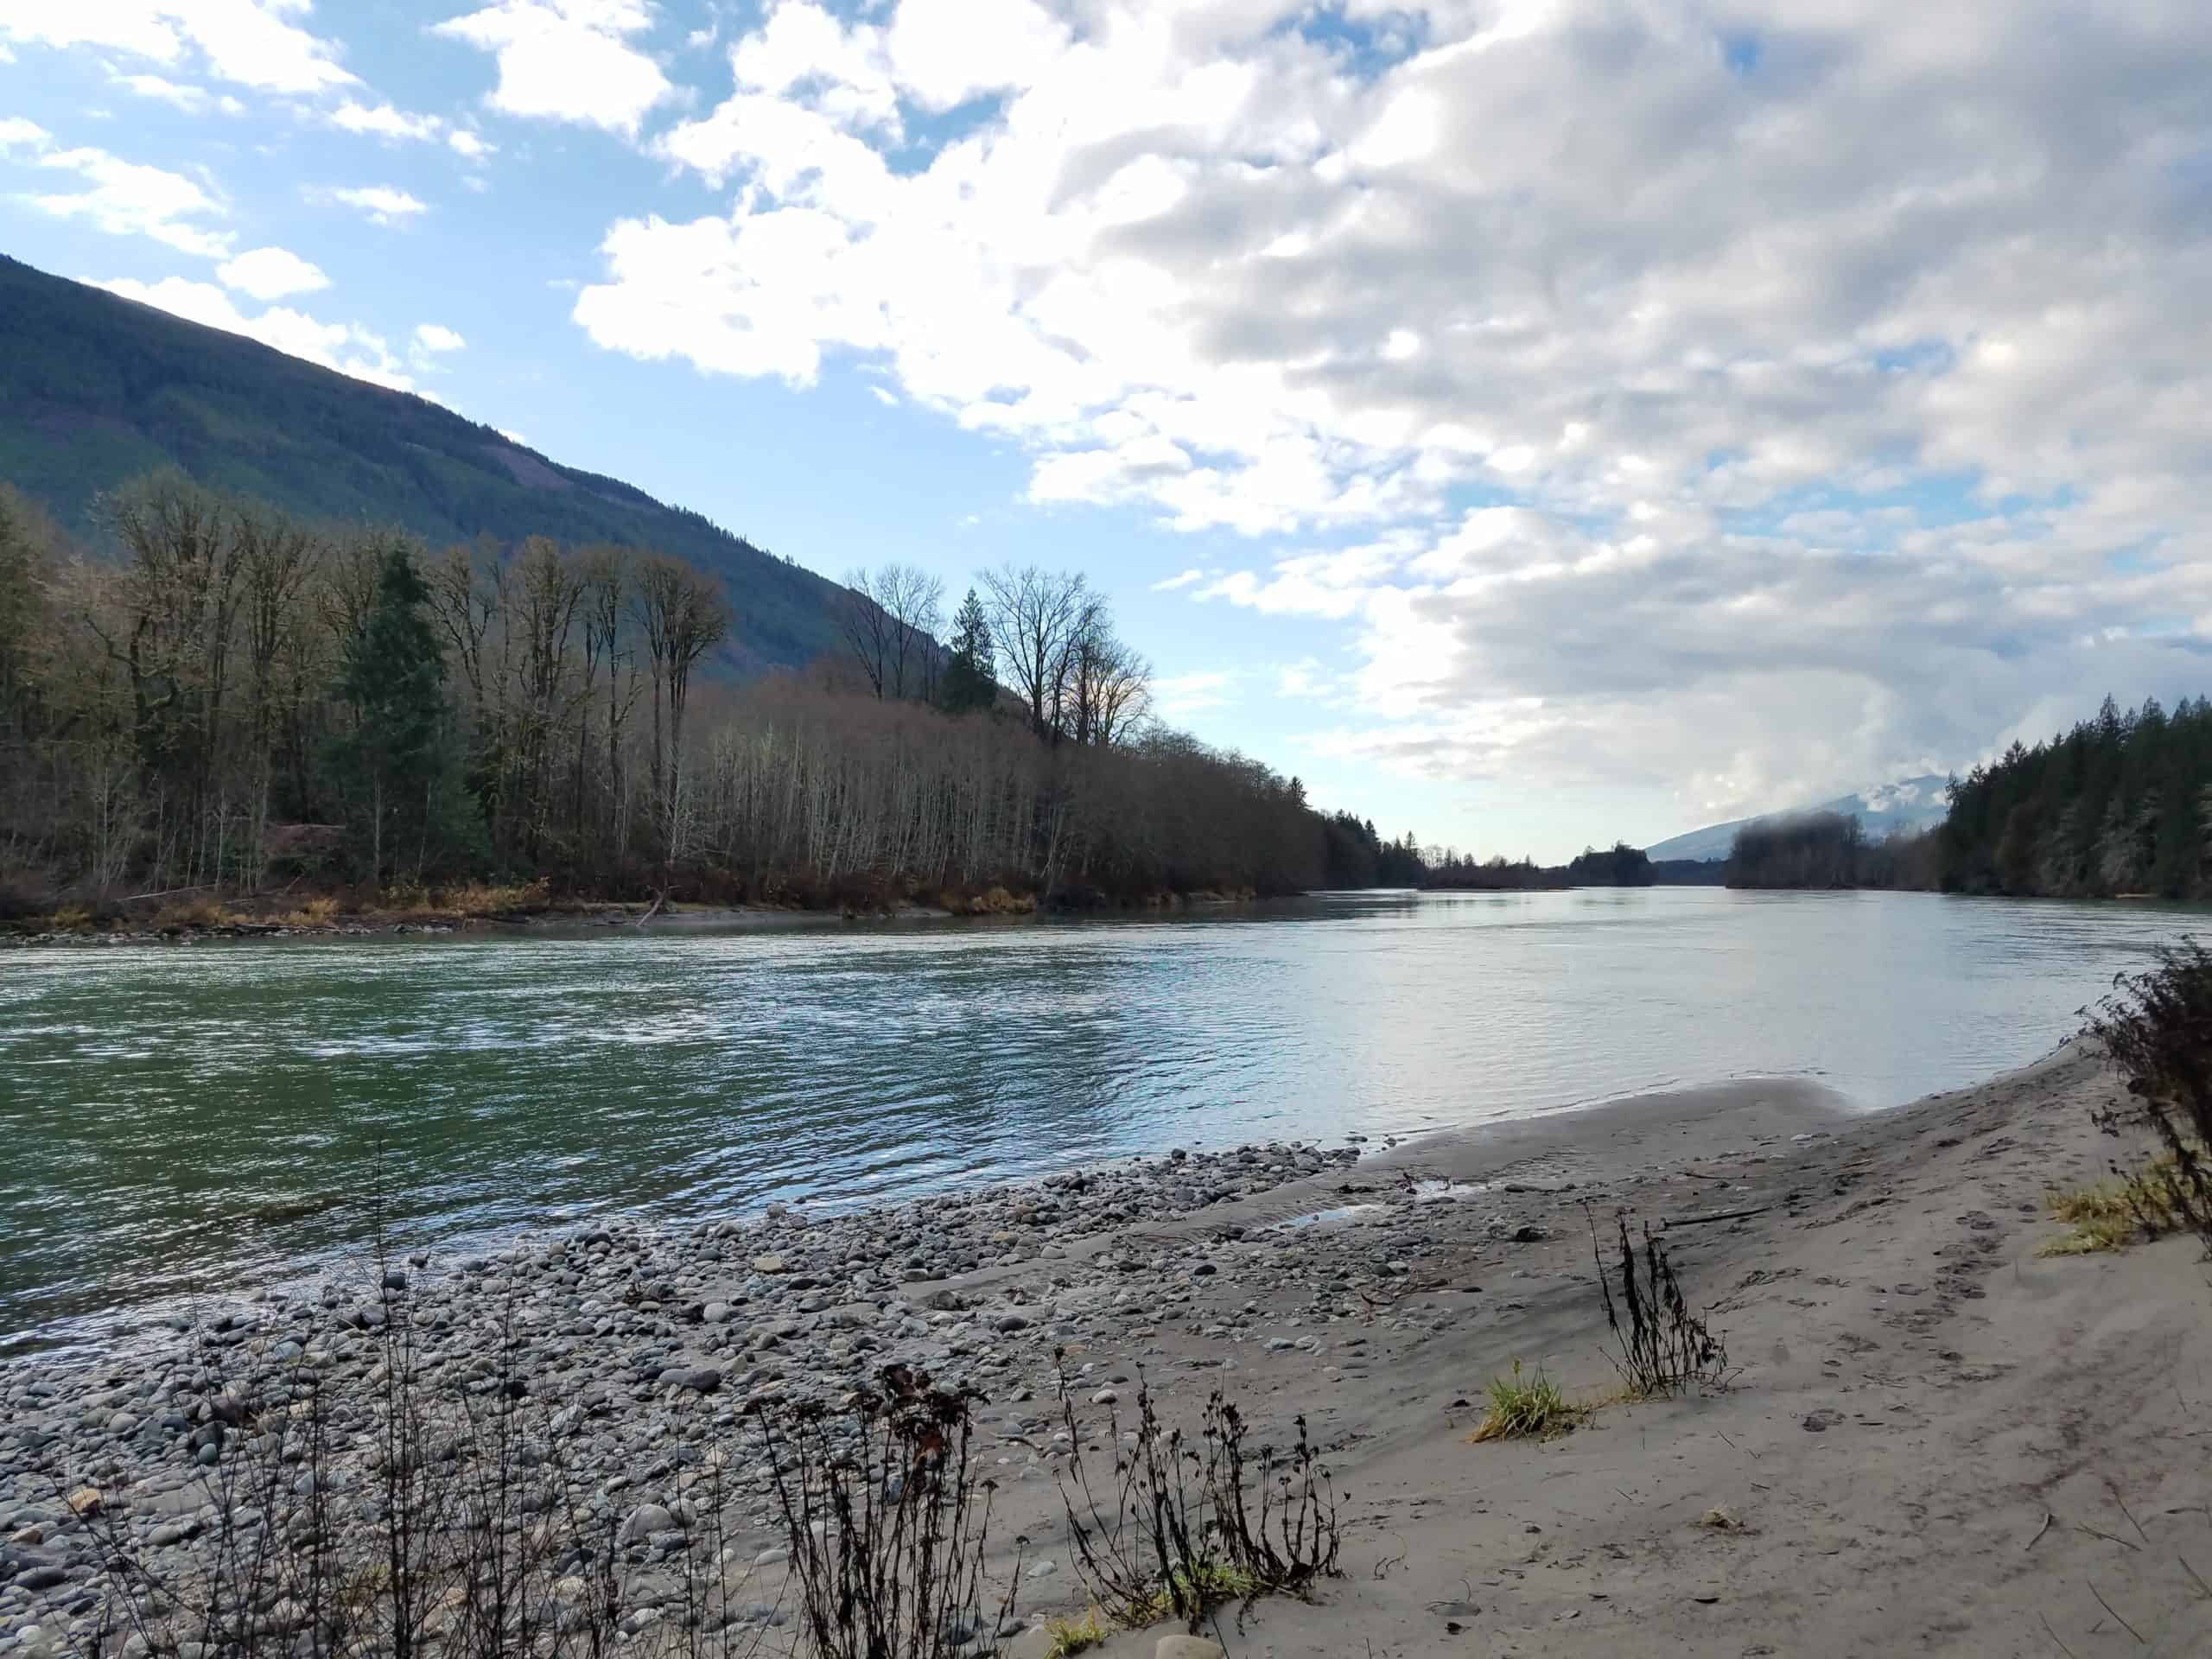 Rasar State Park for camping in Washington